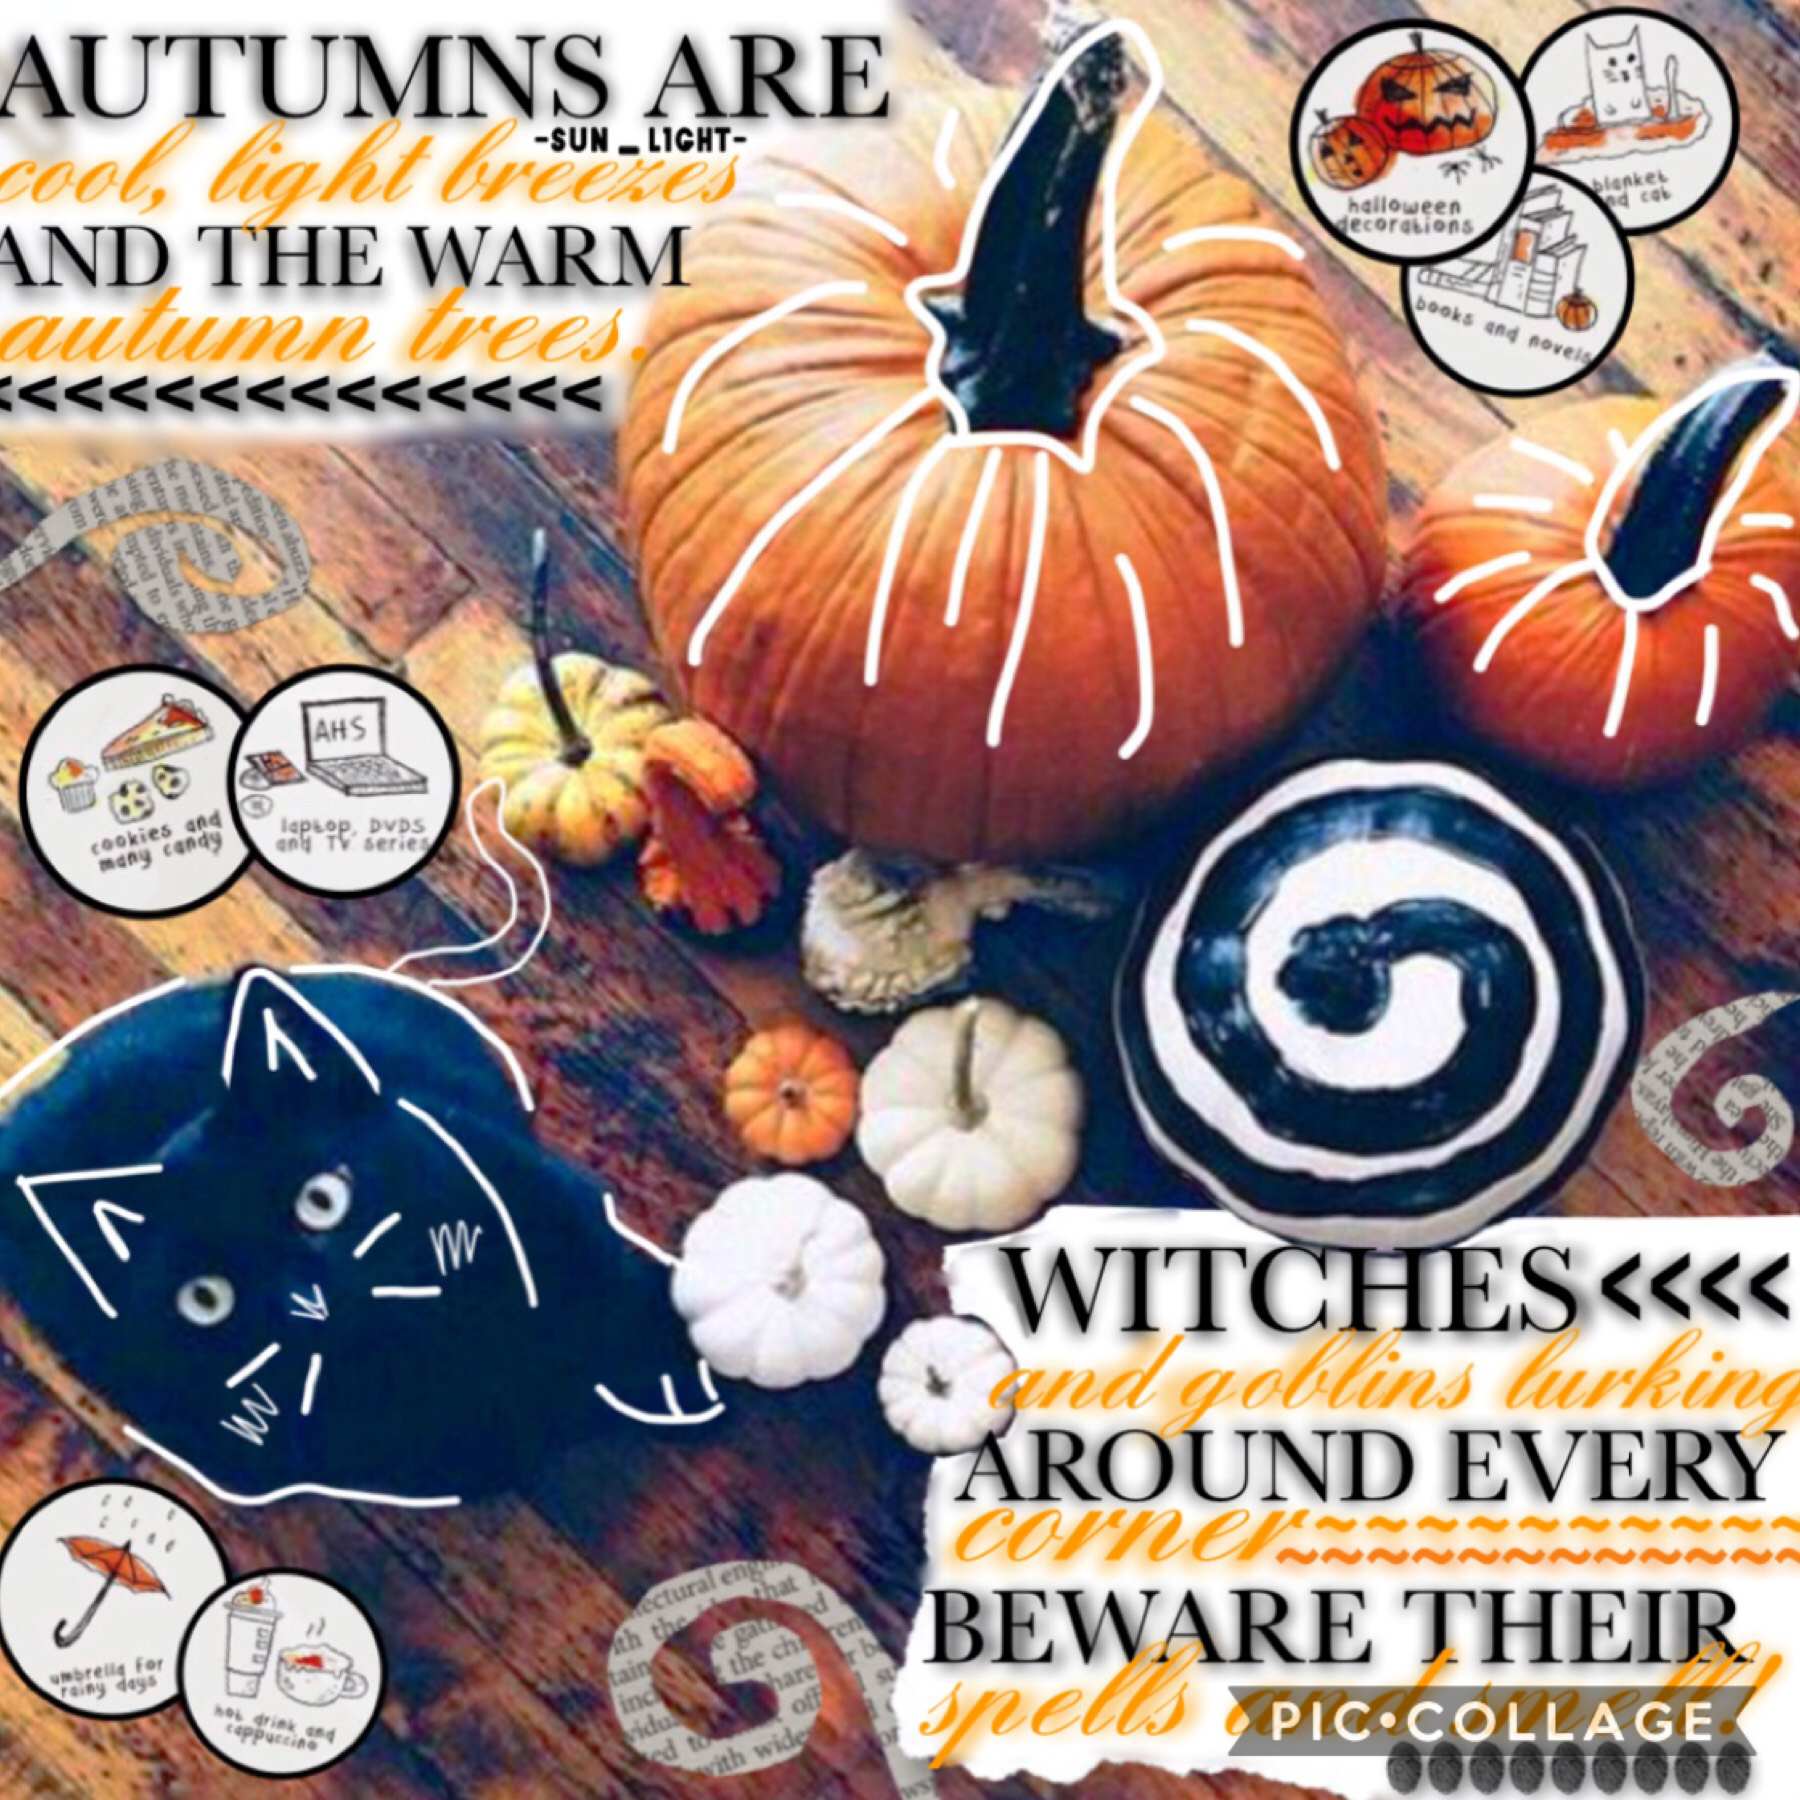 a Halloween edit for y'all! 🎃🍁👻 it was also a entry for @glodenslumbers 's mega collab! if you're not already involved in that then I suggest that you go check it out! it's really easy to get involved in!🍂 I personally really like how this turned out!🌻💫 I